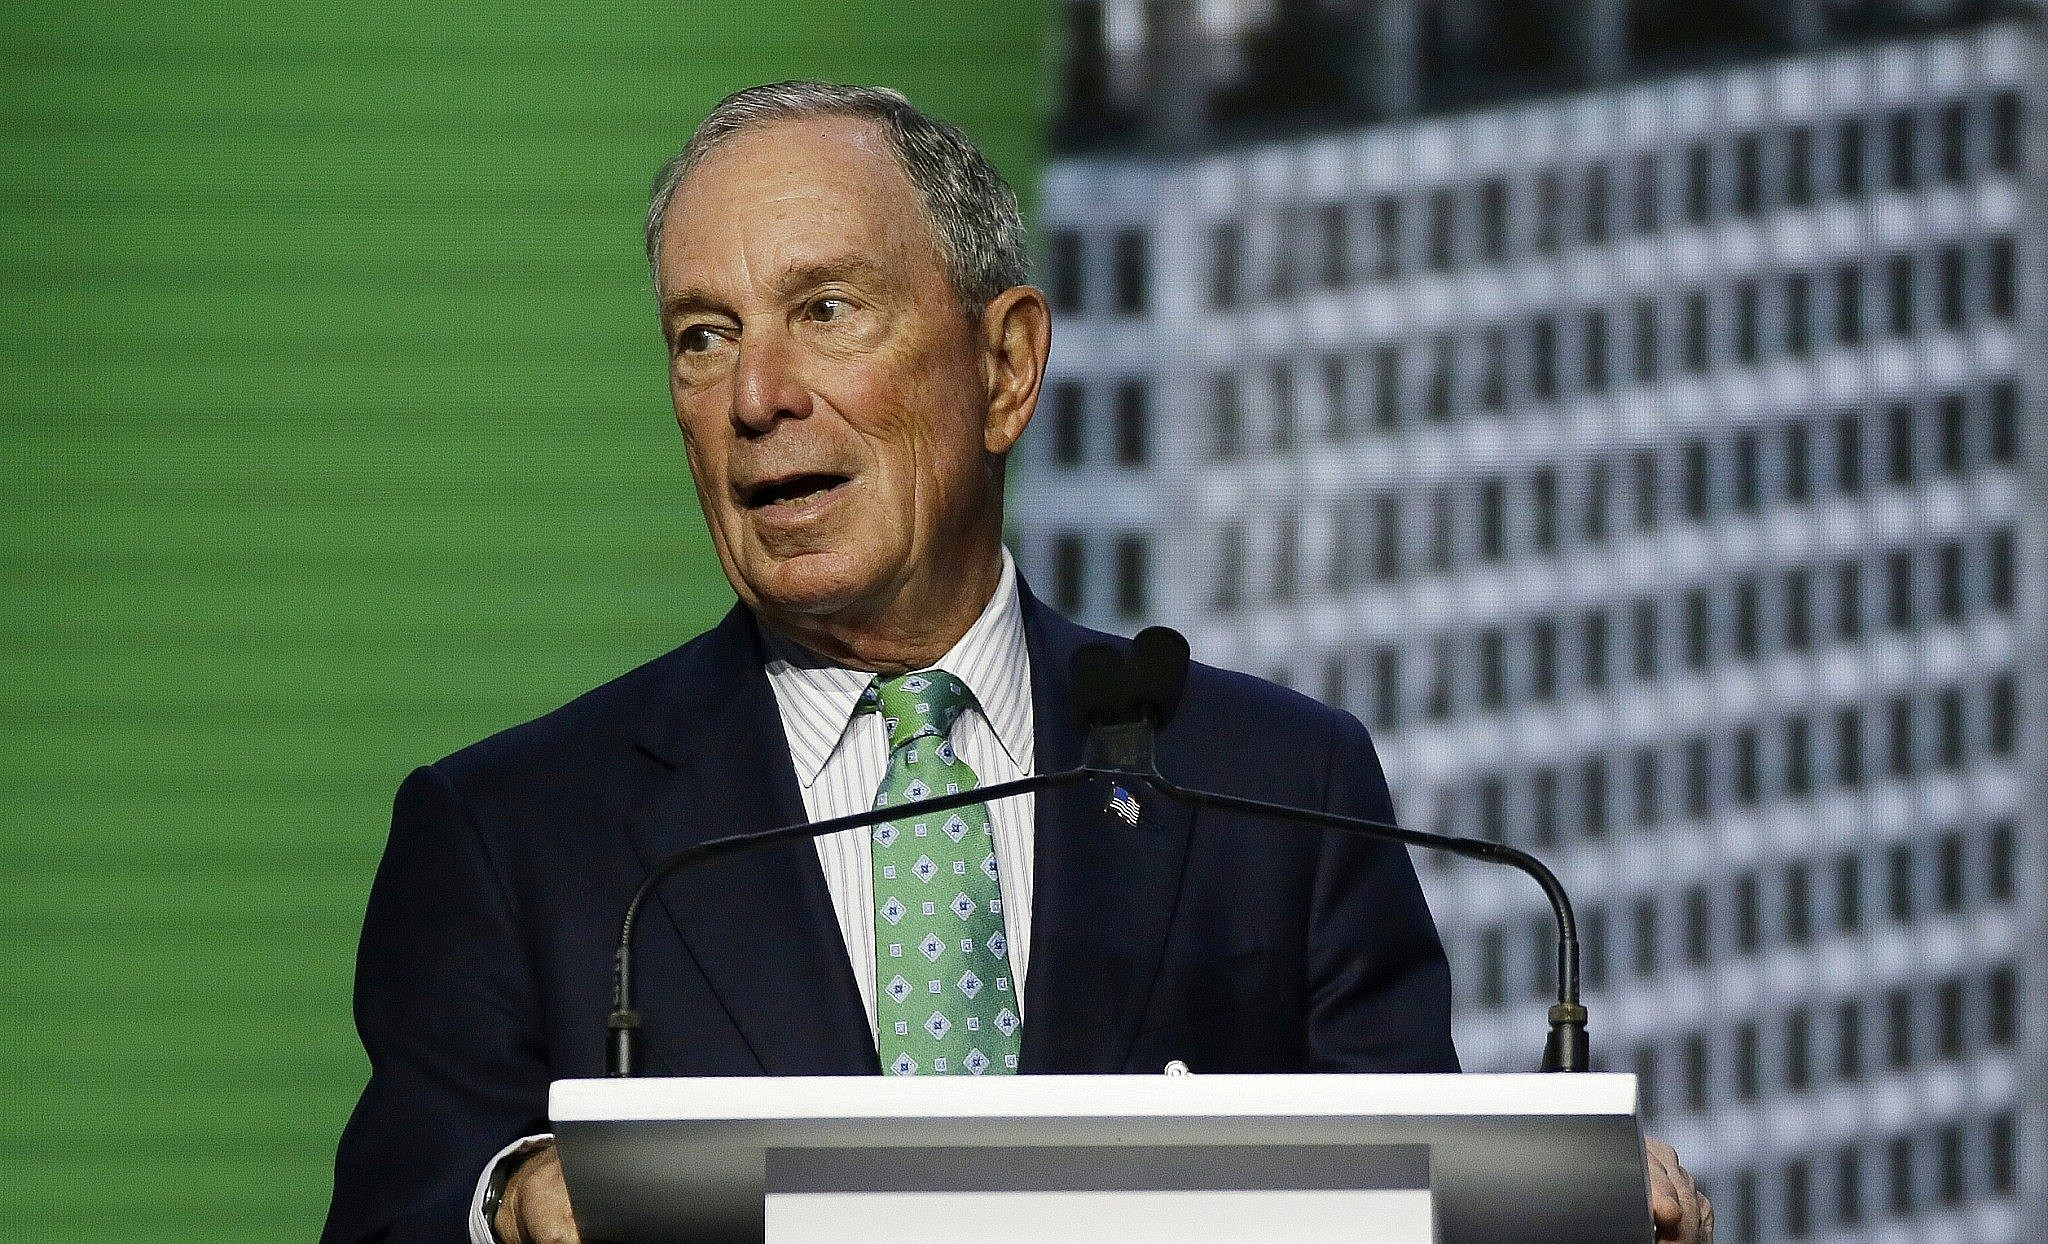 Michael Bloomberg makes it official: He's a registered Democrat again